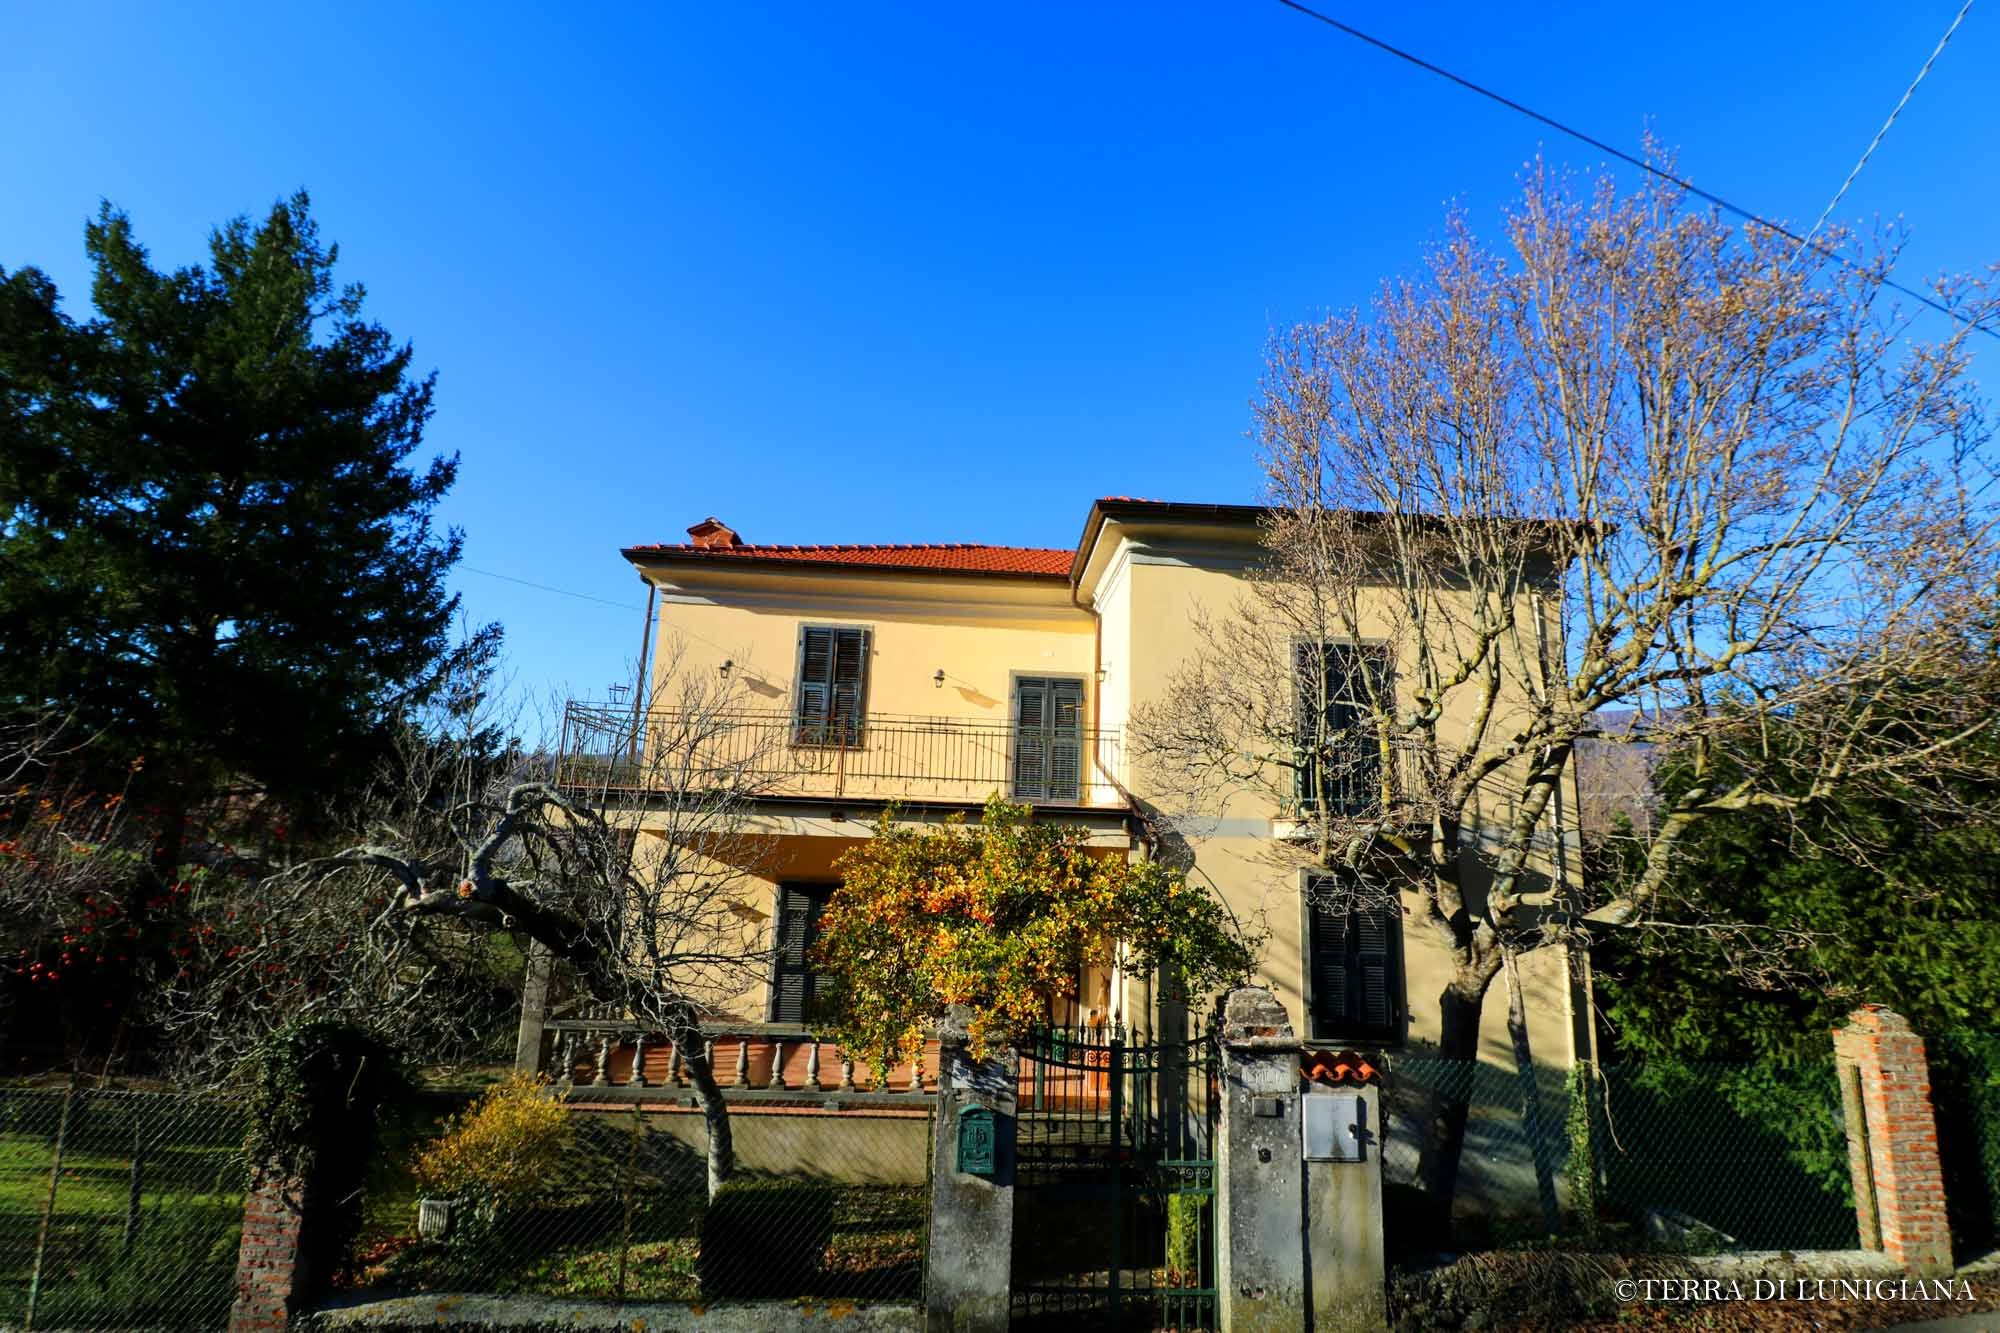 VILLA EMILIA – Liberty Villa With Garden